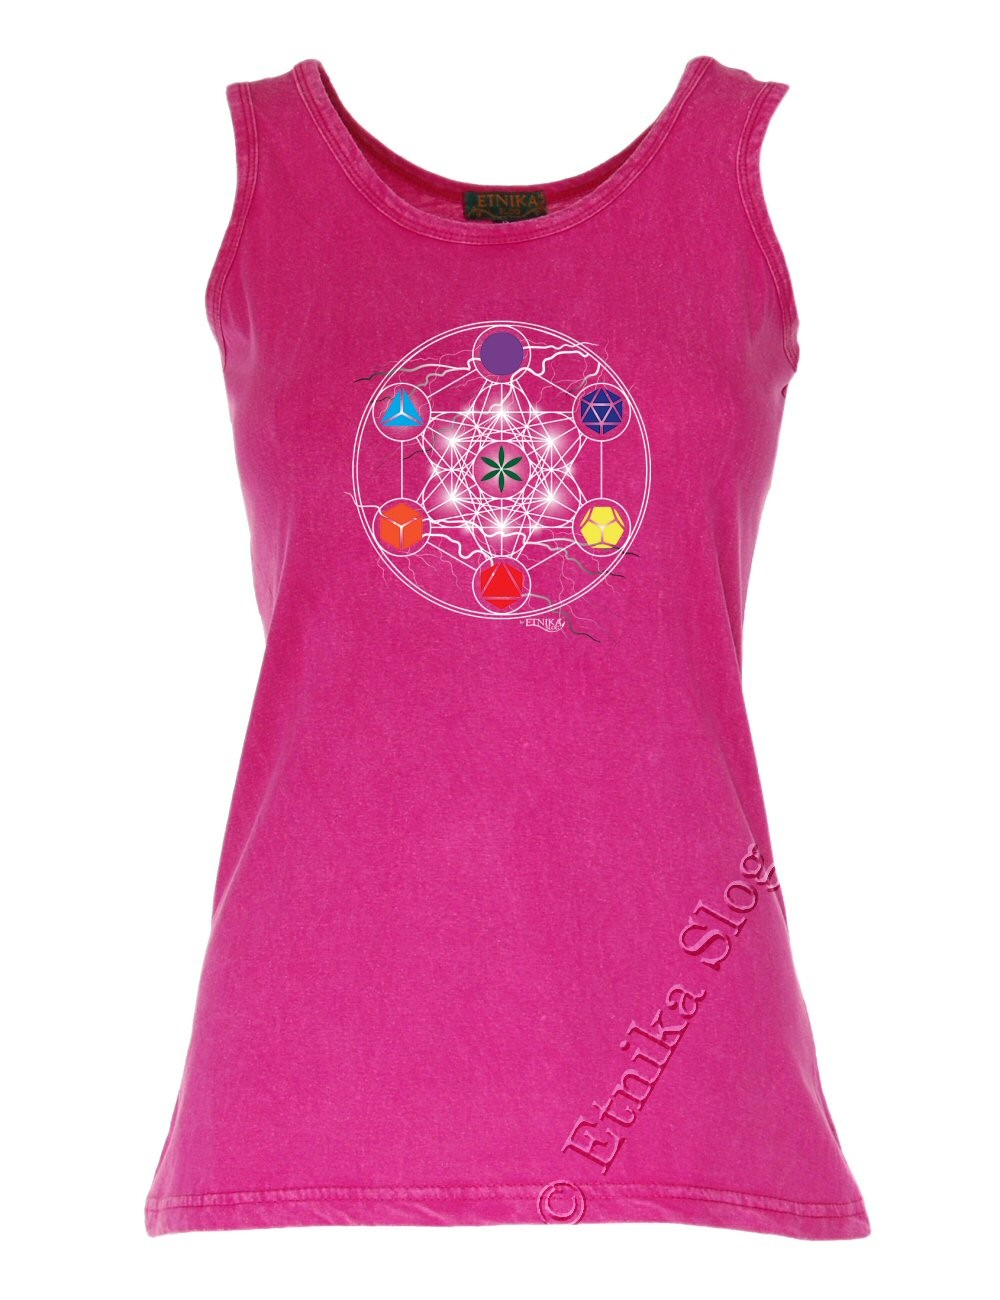 TOPS WITH PRINTS AB-NPM04-41 - Oriente Import S.r.l.